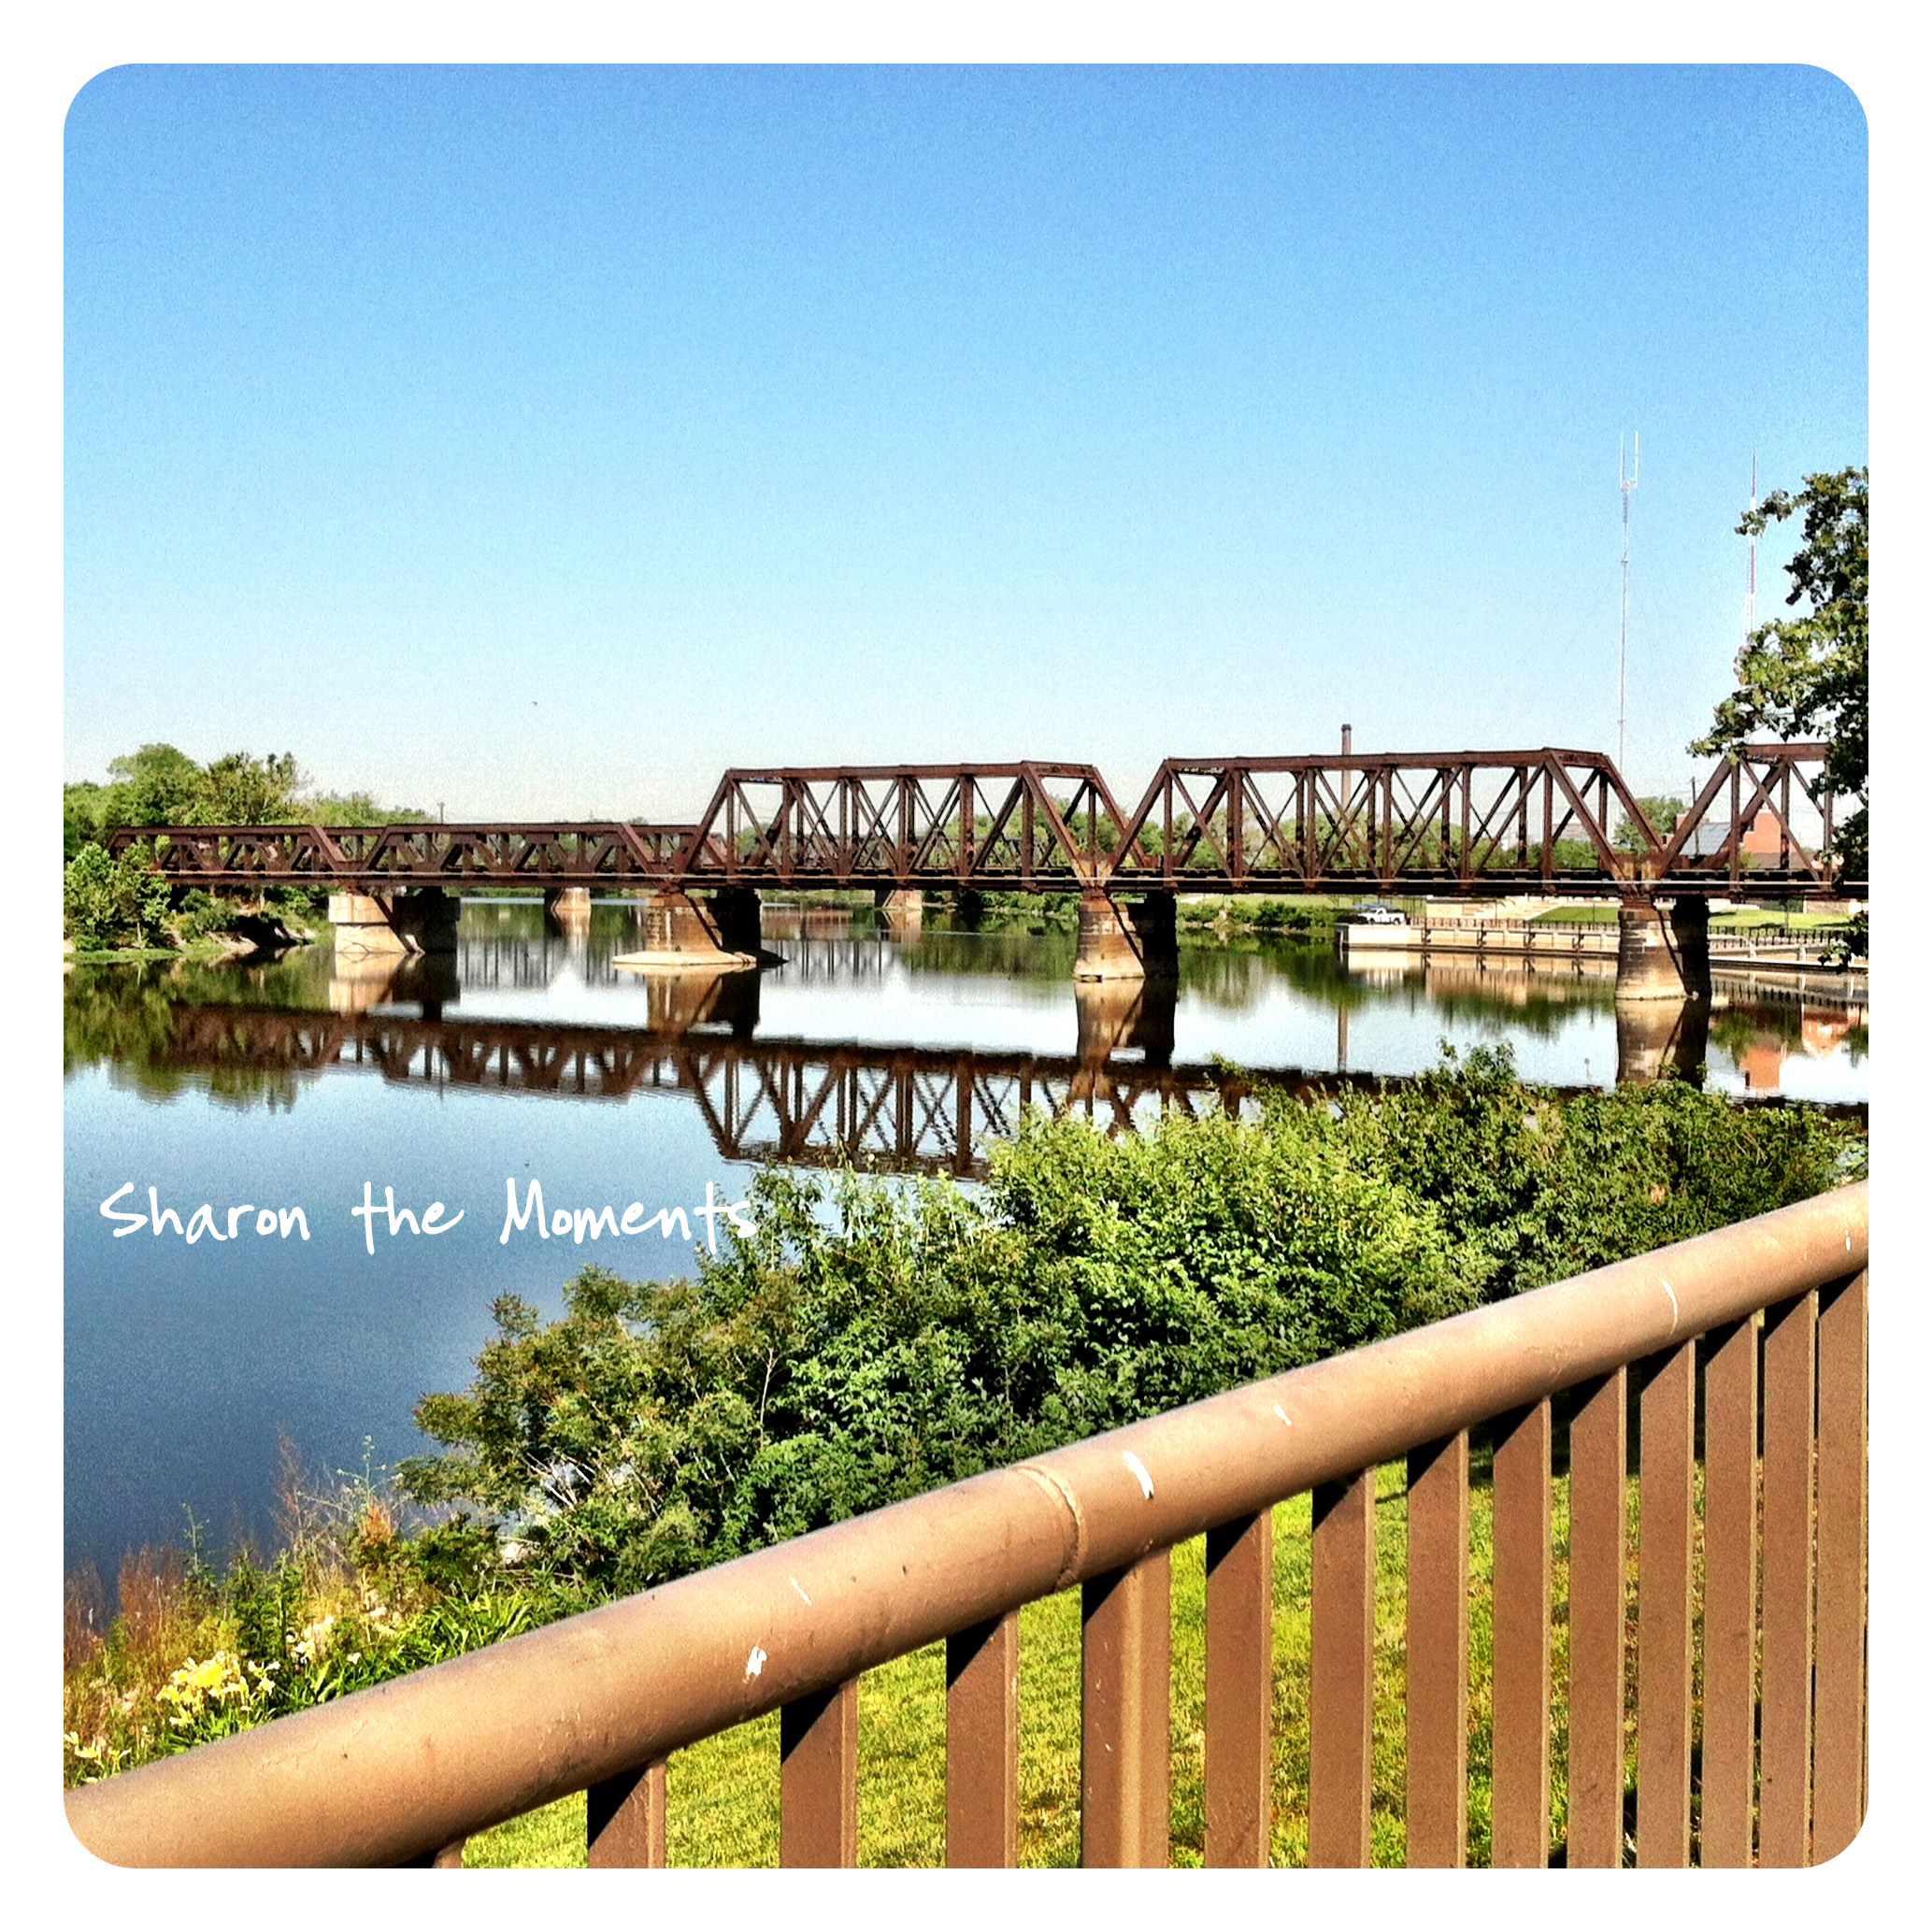 iPhoneography Downtown Columbus Ohio Scioto Mile|Sharon the Moments blog